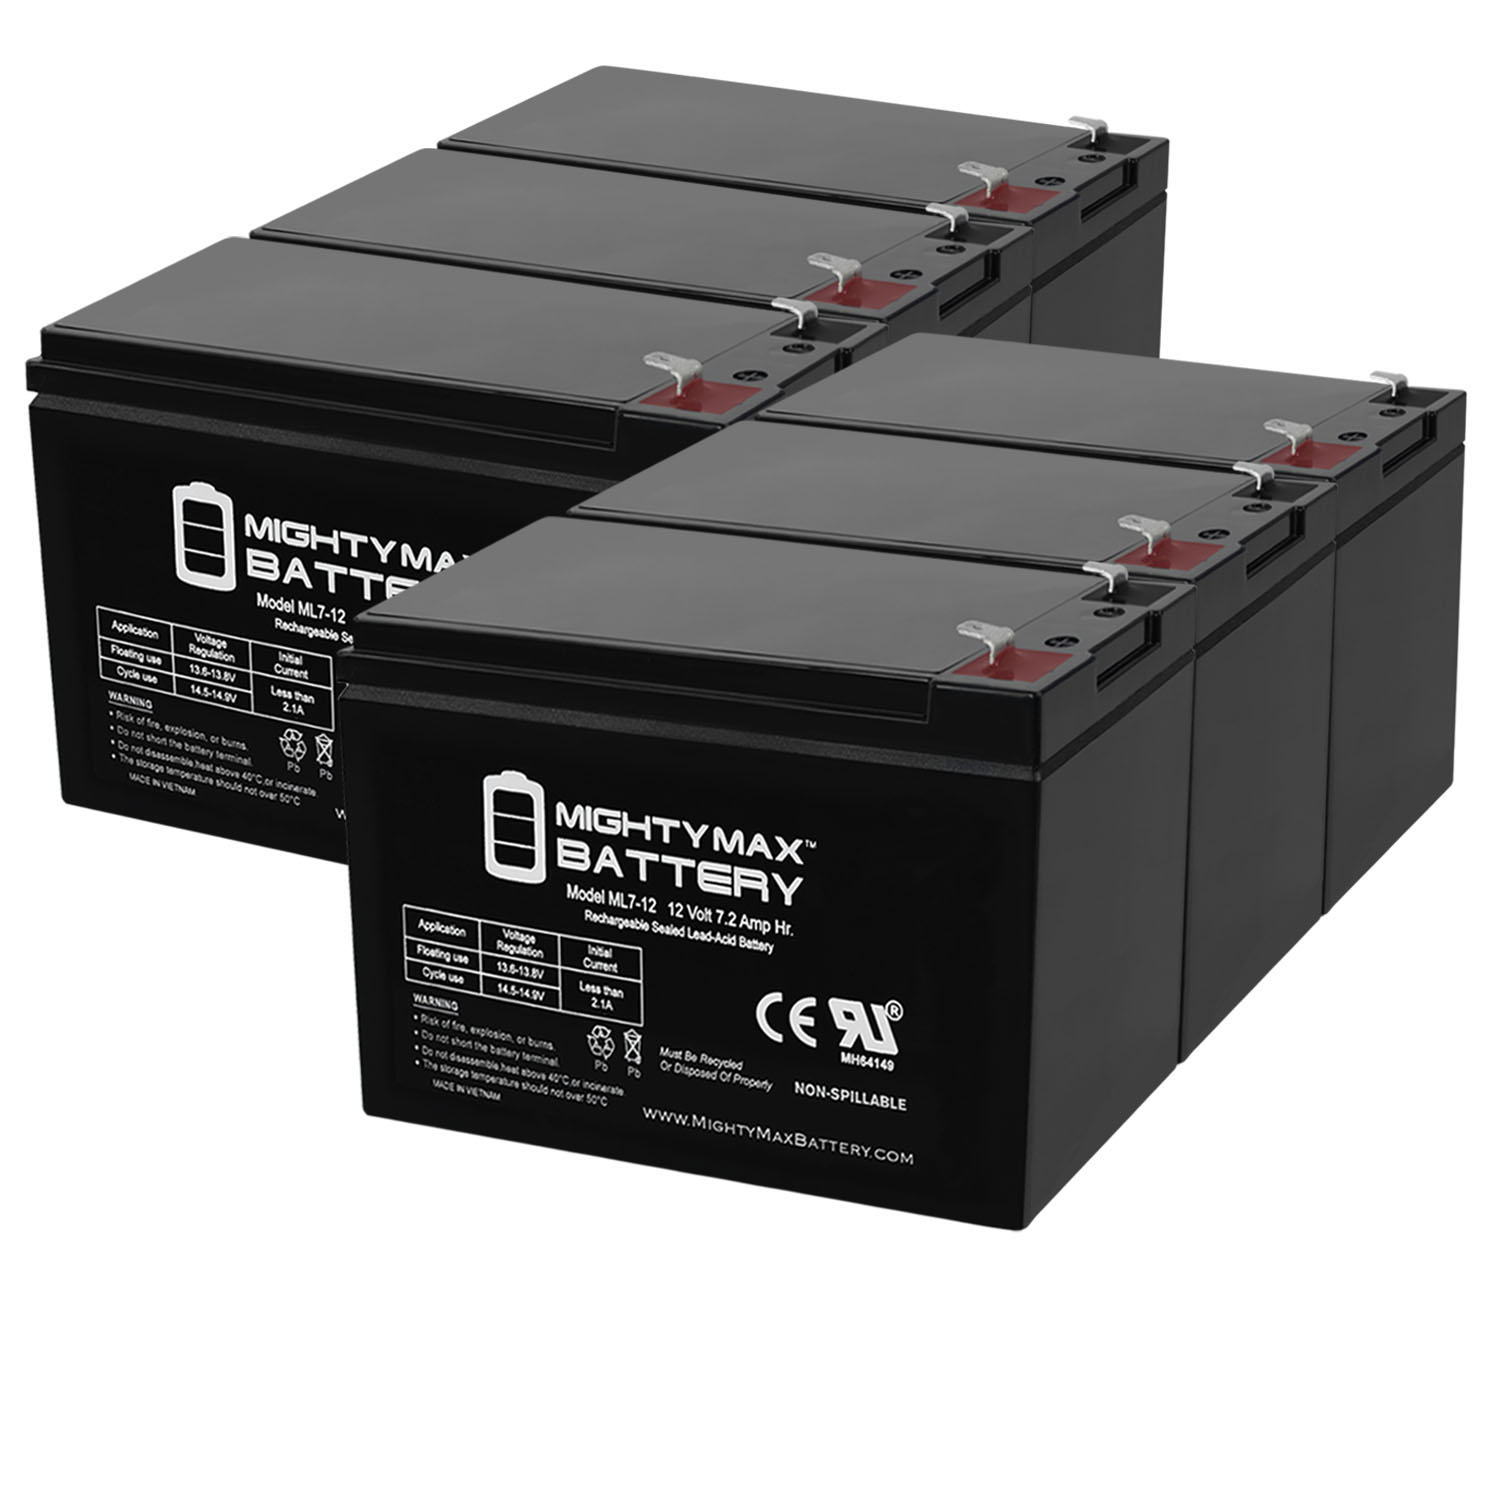 2 Pack Brand Product Mighty Max Battery 12V 7Ah Compatible Battery for UPS APC Back-UPS BK200B